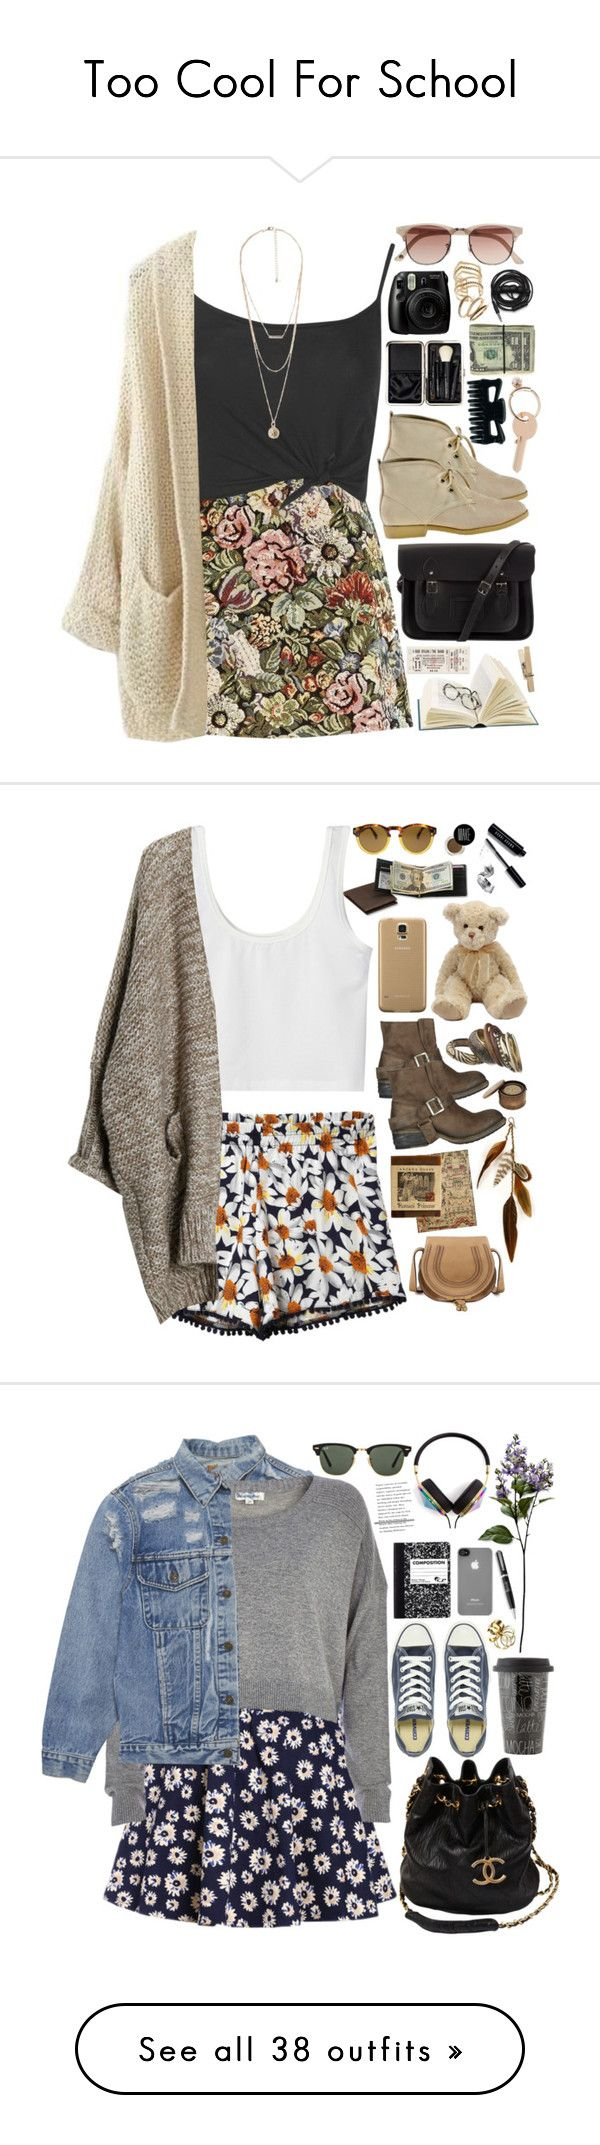 """Too Cool For School"" by chocolatepumma ❤ liked on Polyvore"